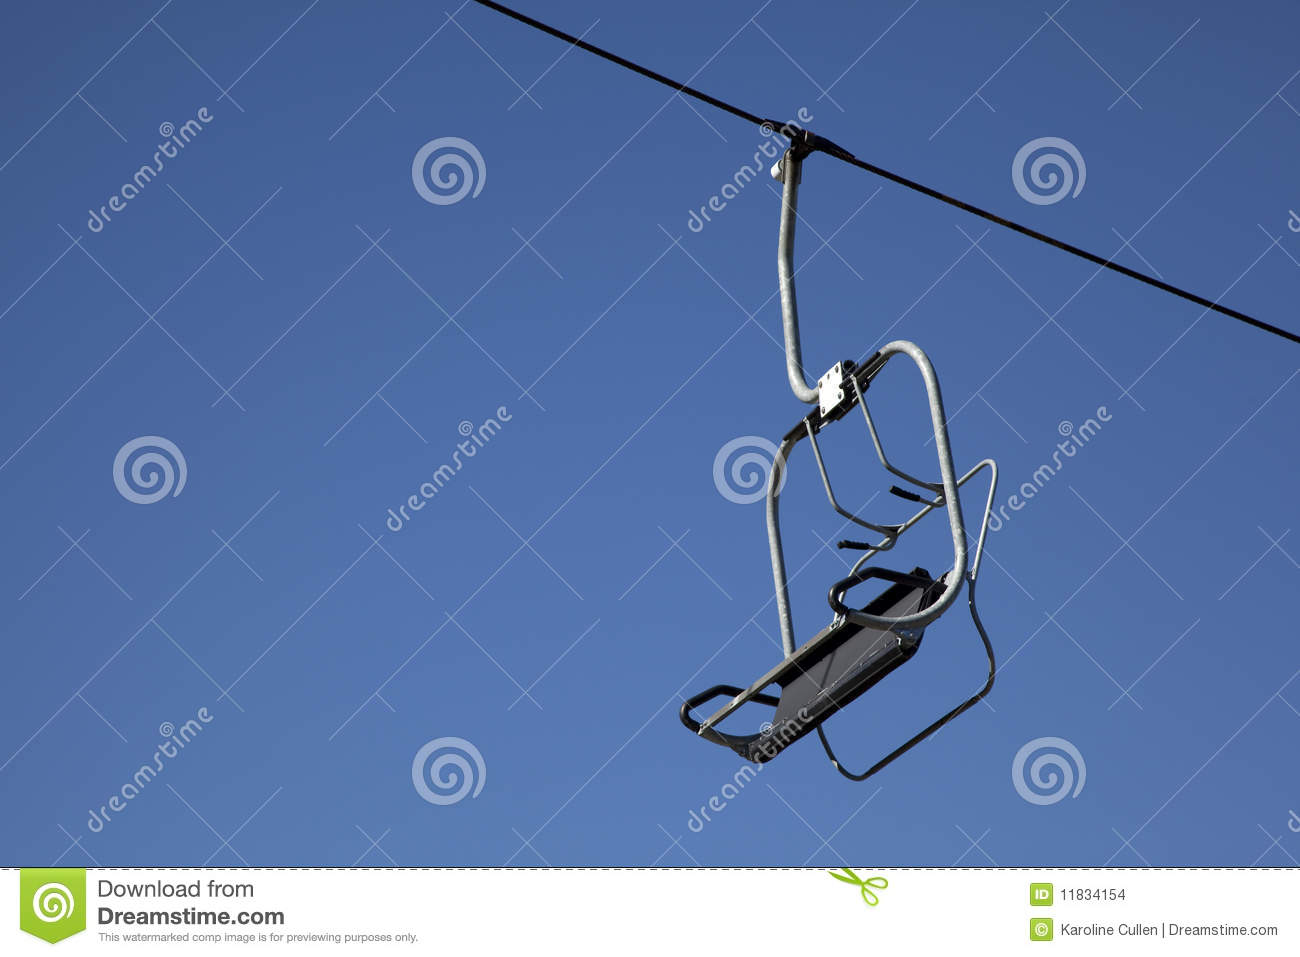 buy ski lift chair ebay party covers an empty with blue sky royalty free stock